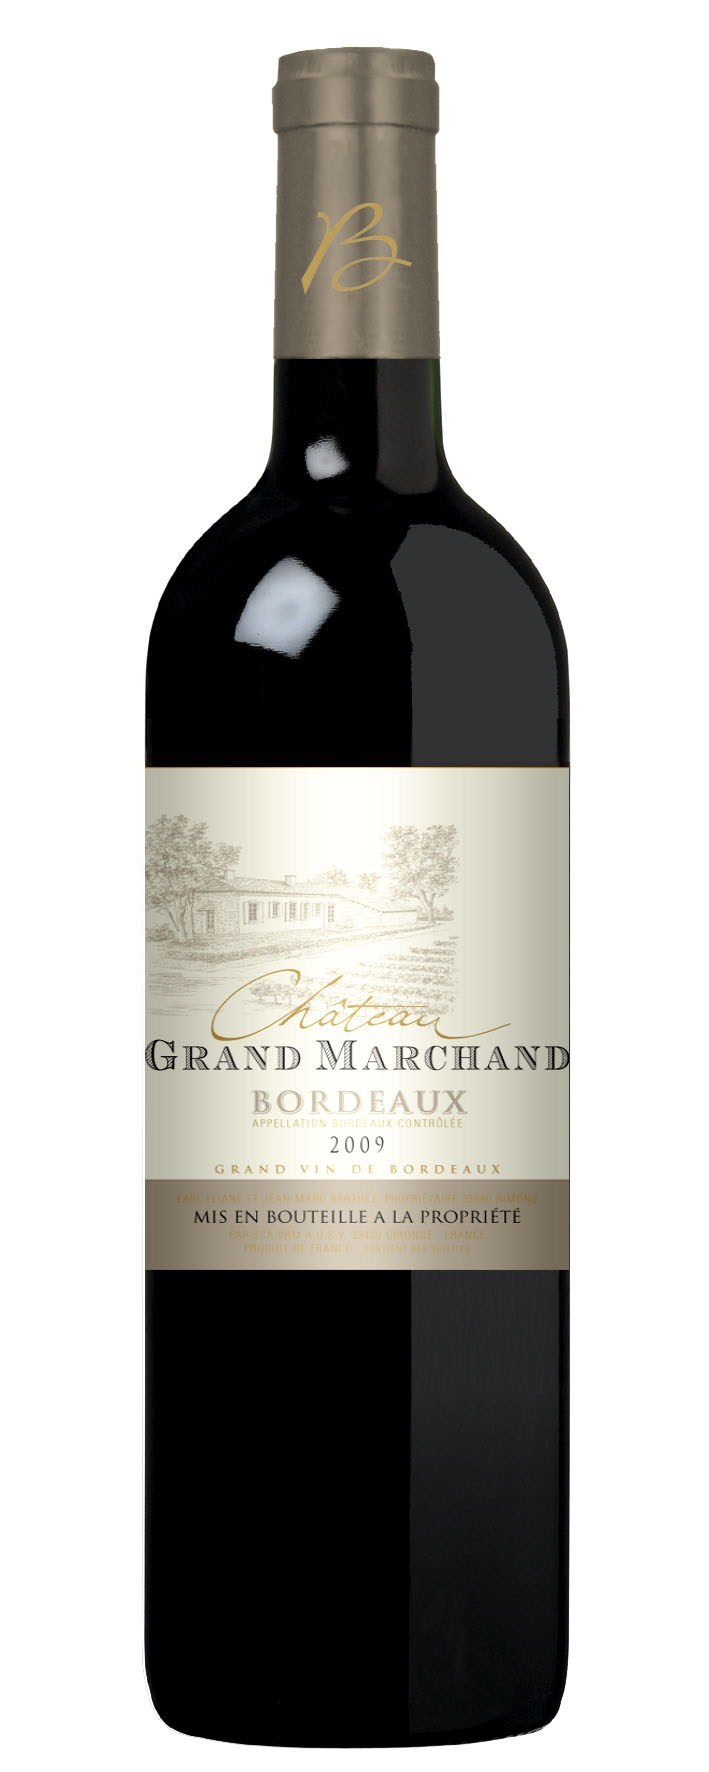 Bordeaux Producer s choice: Château Grand Marchand 2010 Informations Appellation: AOC Bordeaux Grapes: Merlot,